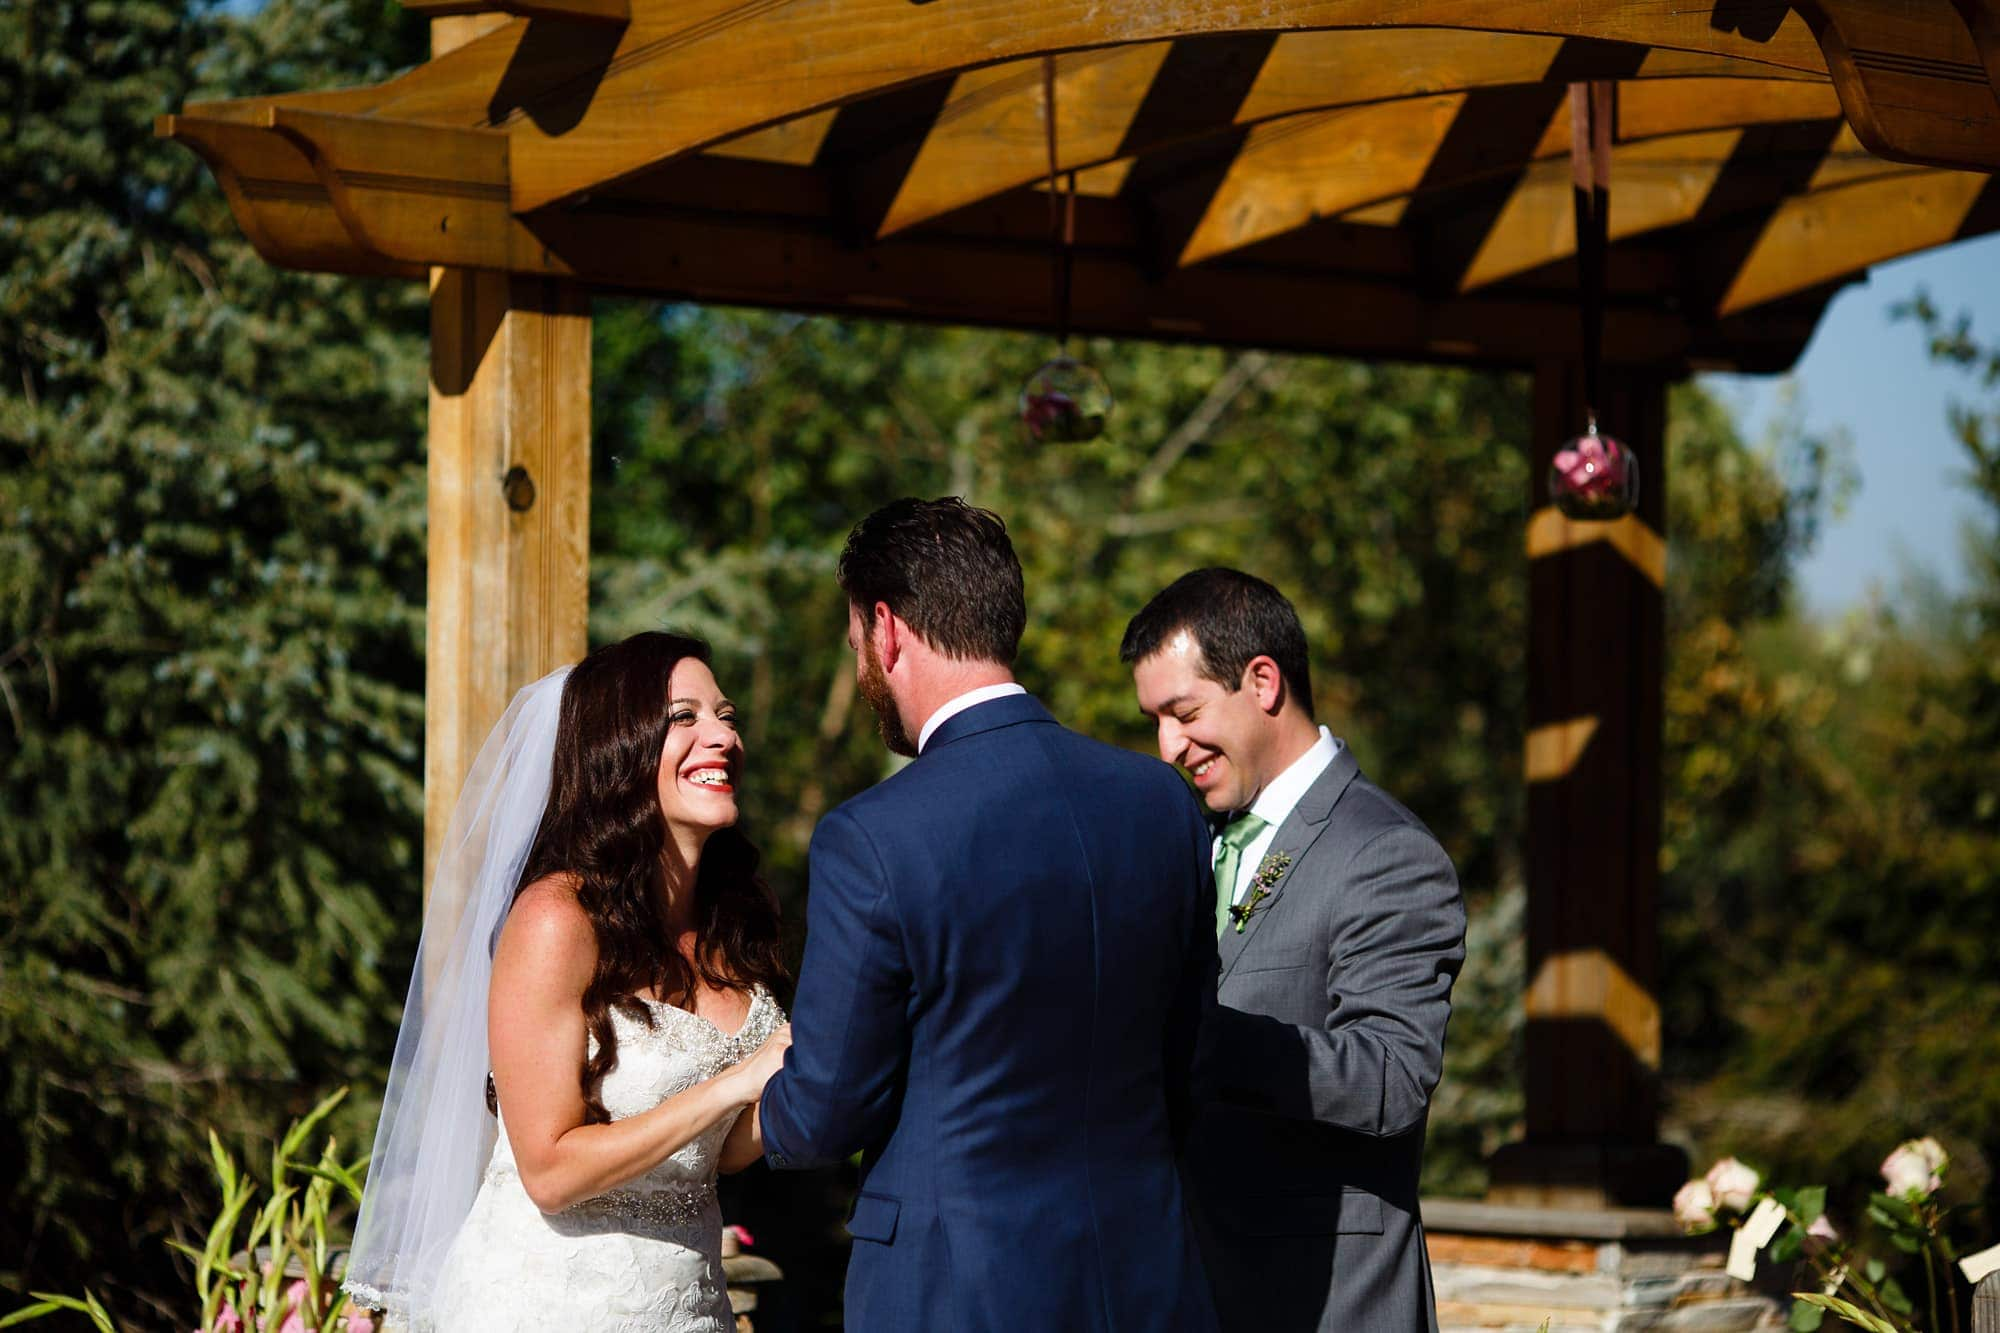 Gina and Blake share a moment during their Willow Ridge Manor wedding